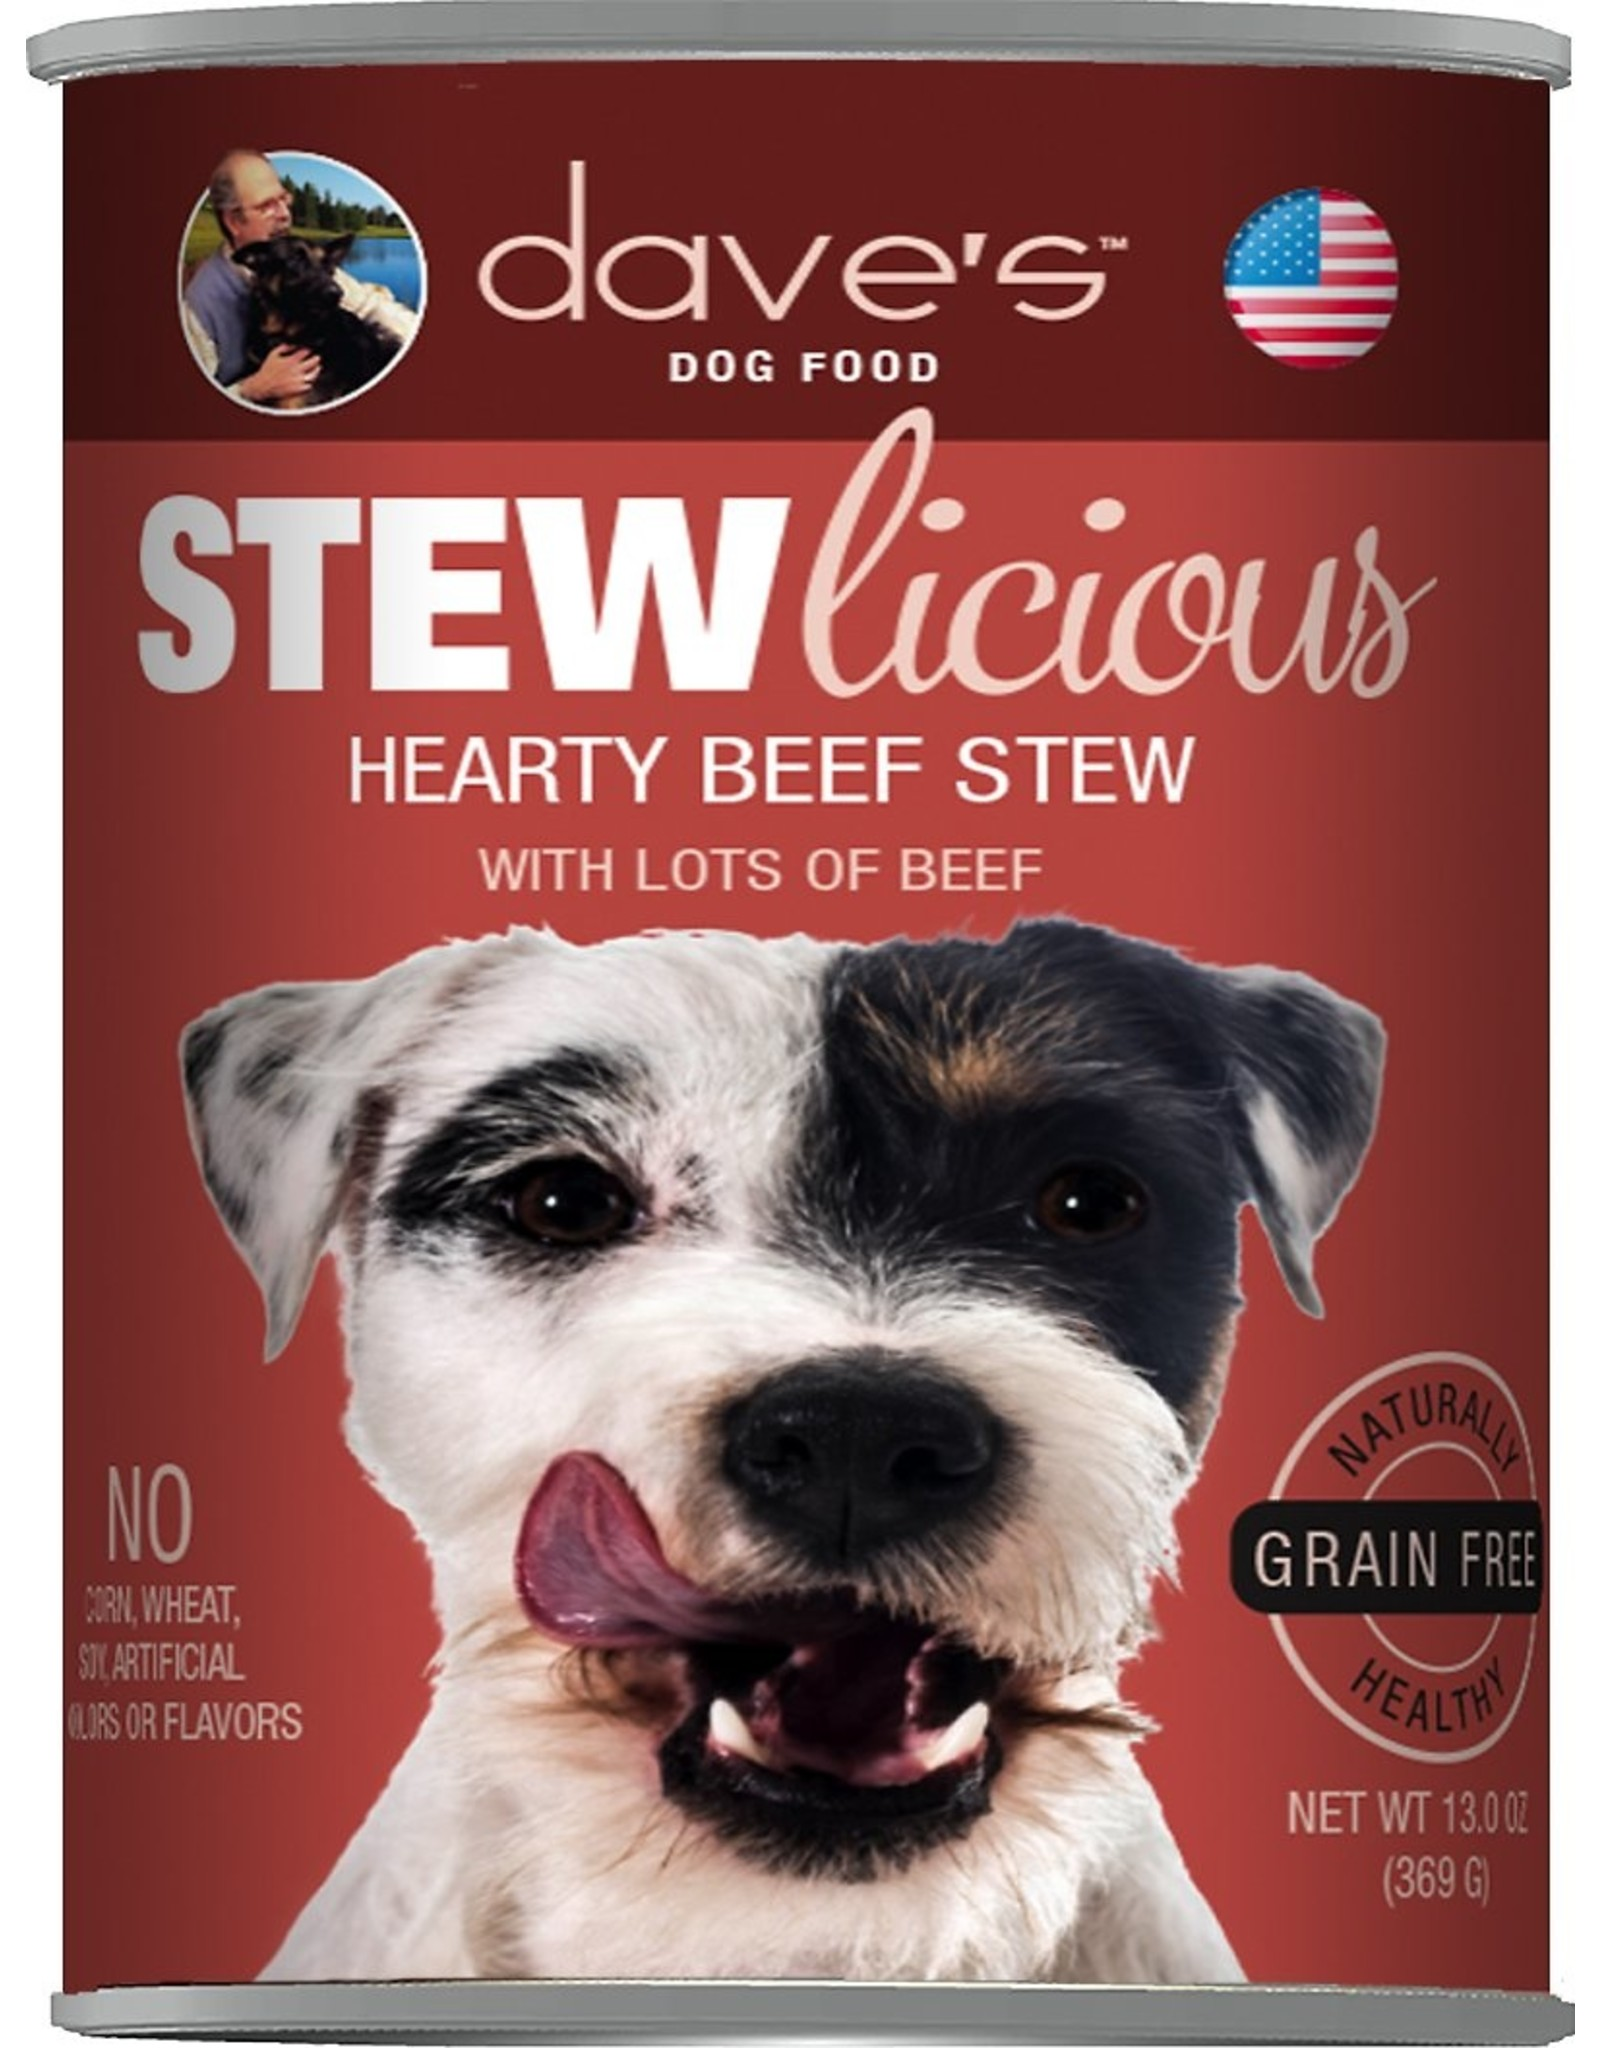 Dave's Pet Food DAVE'S DOG STEWLICIOUS HEARTY BEEF STEW 13.2OZ